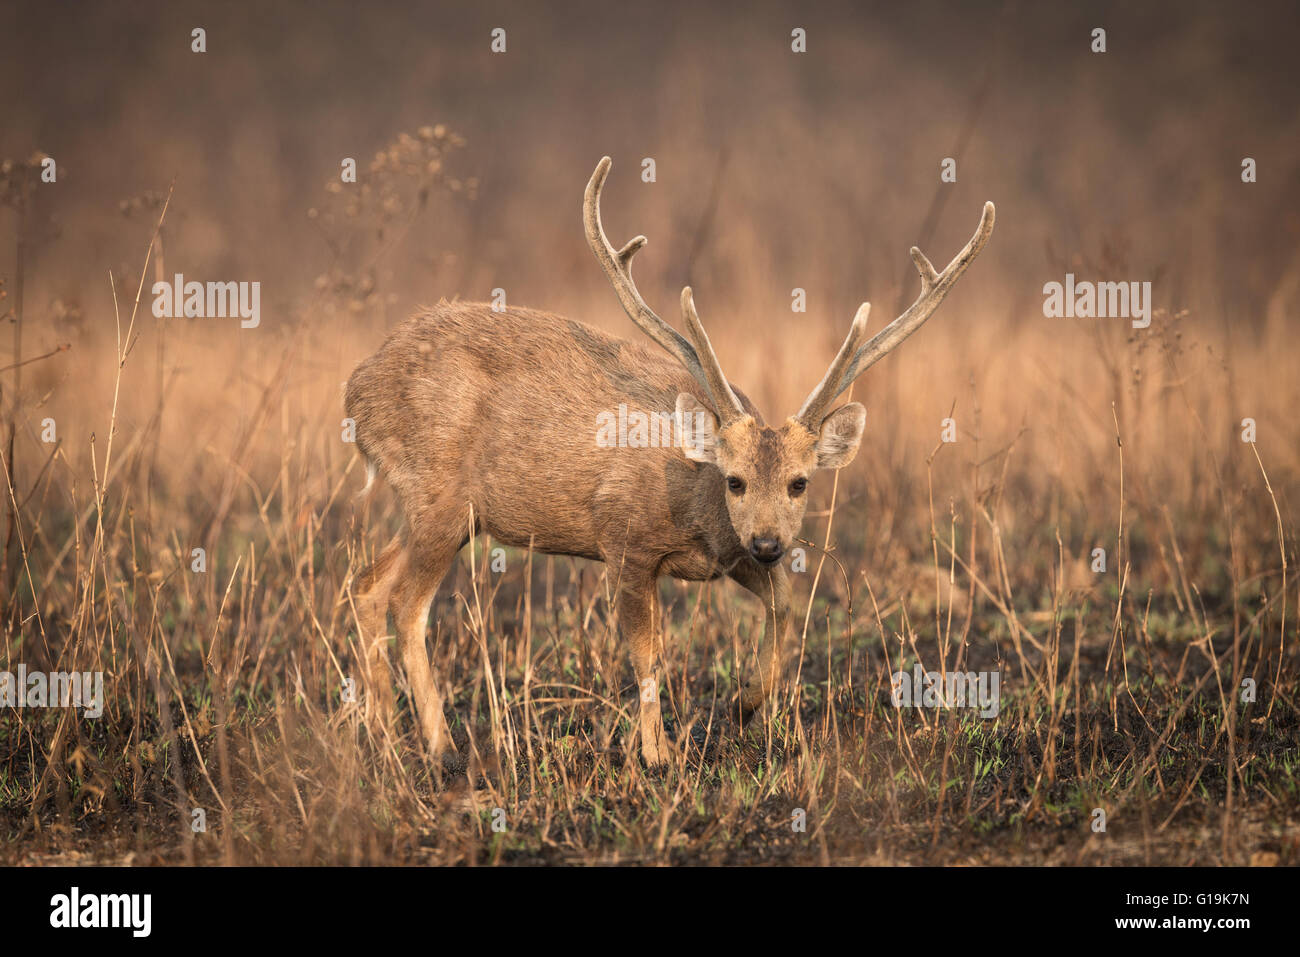 Indohinese Hog deer - Once widespread and relatively abundant, the hog deer has suffered dramatic declines.s - Stock Image